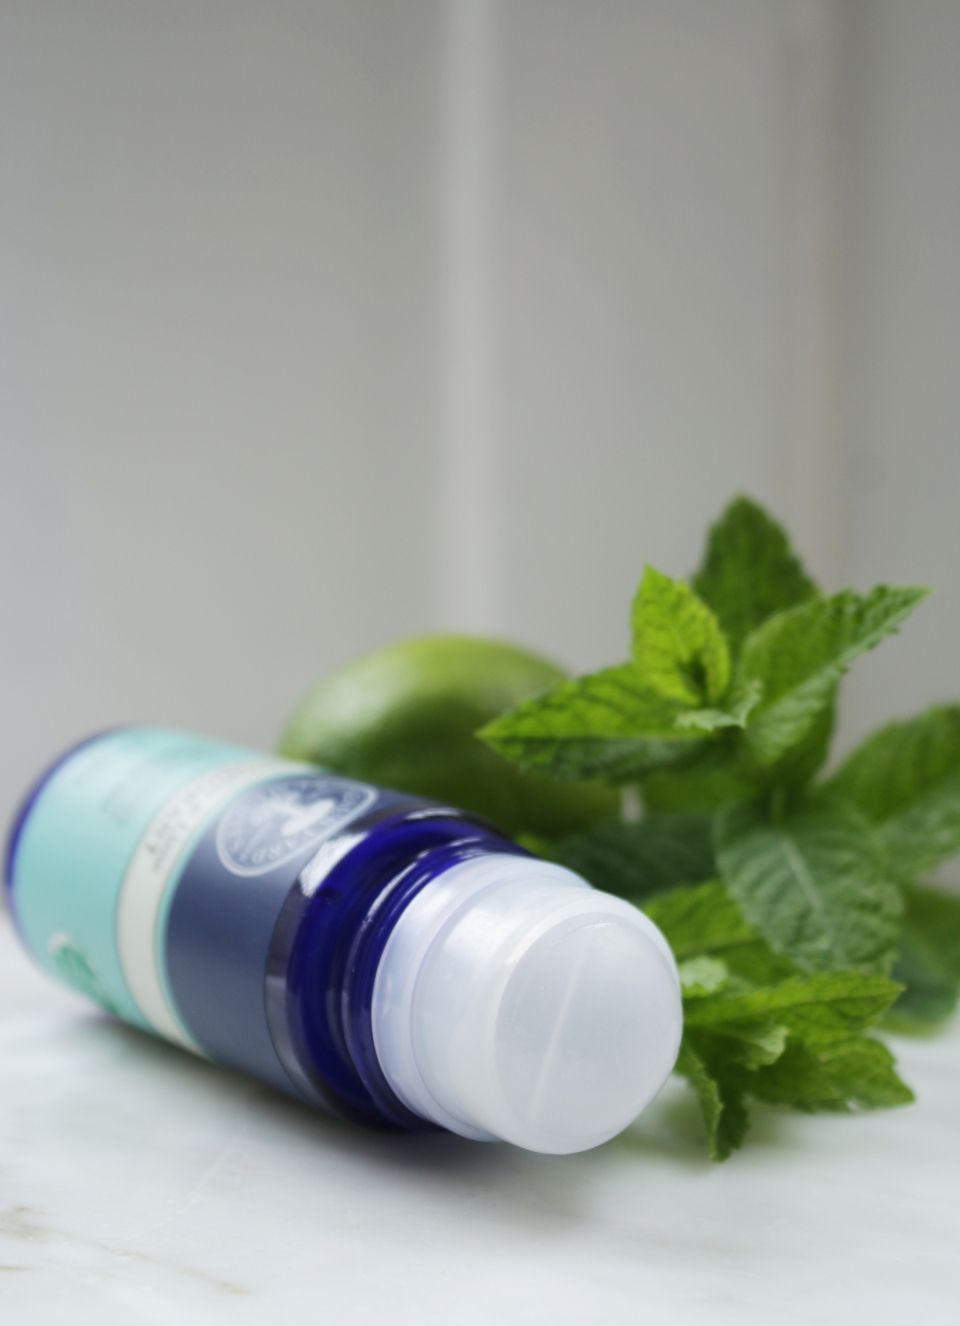 Neal's Yard Remedies peppermint and lime deodorant open top